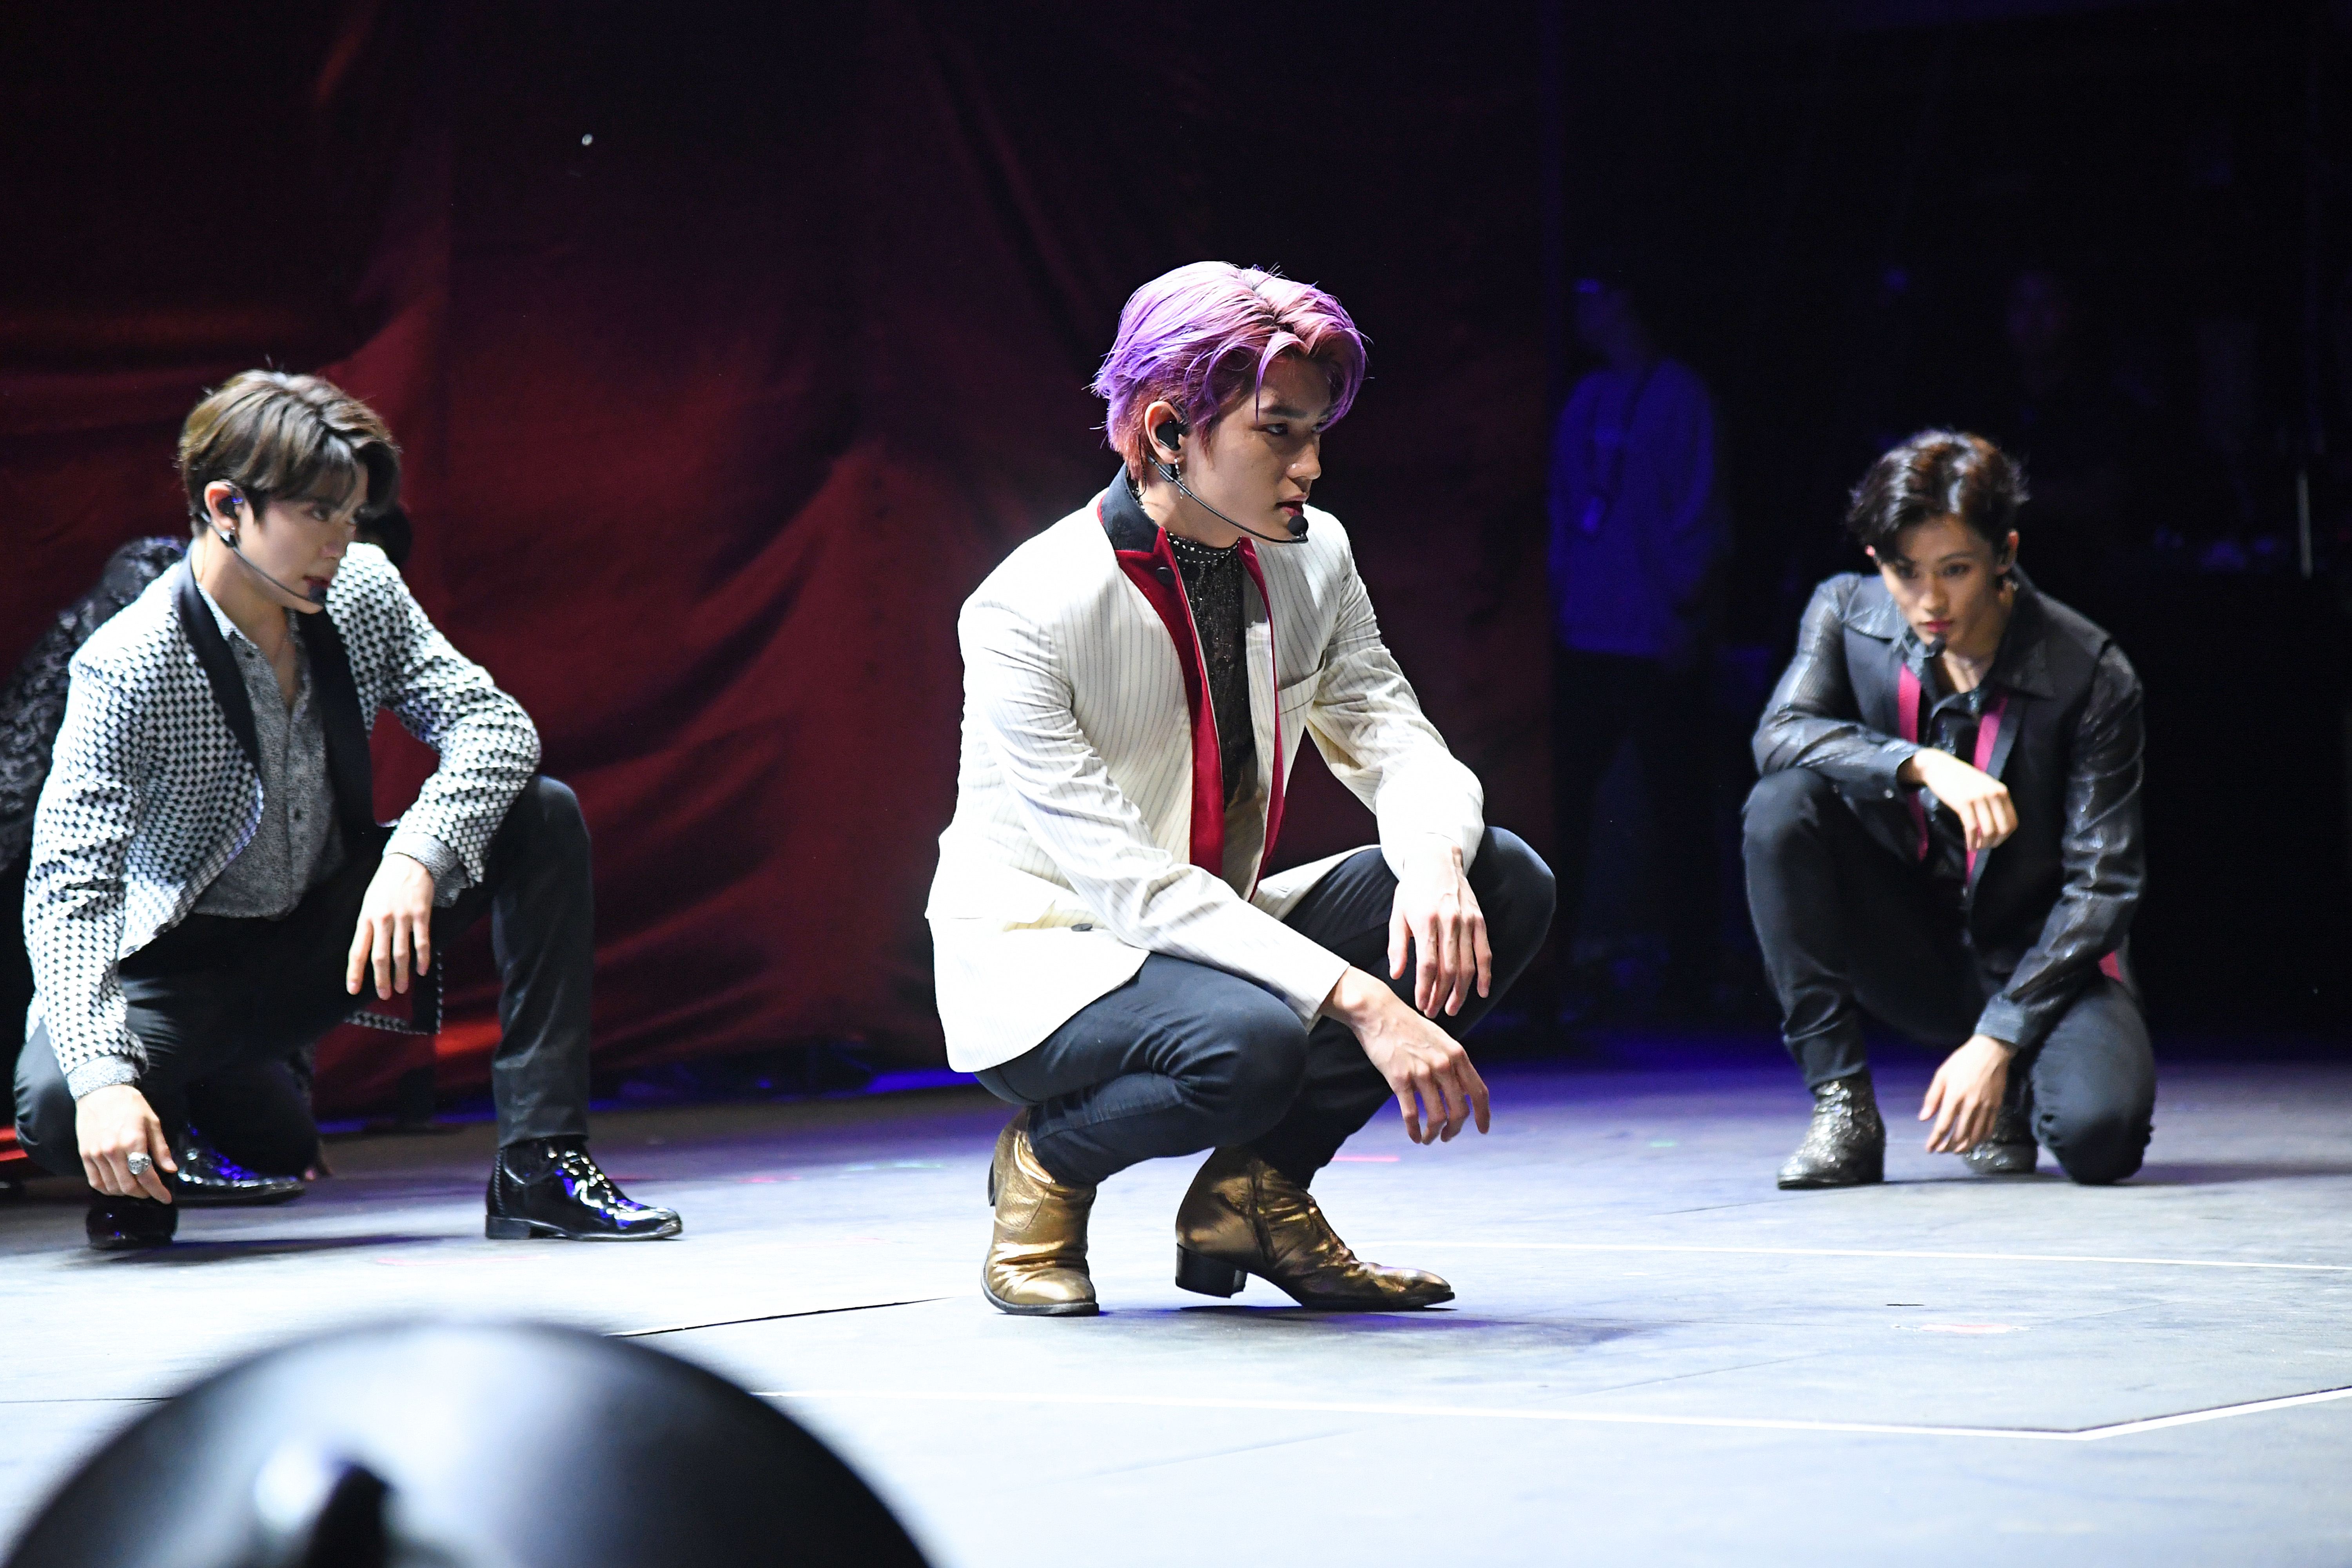 NEW YORK, NEW YORK - SEPTEMBER 28:  (L-R) Jaehyun, Taeyong, and Mark of NCT 127 perform onstage during the 2019 Global Citizen Festival: Power The Movement in Central Park on September 28, 2019 in New York City. (Photo by Kevin Mazur/Getty Images for Global Citizen)